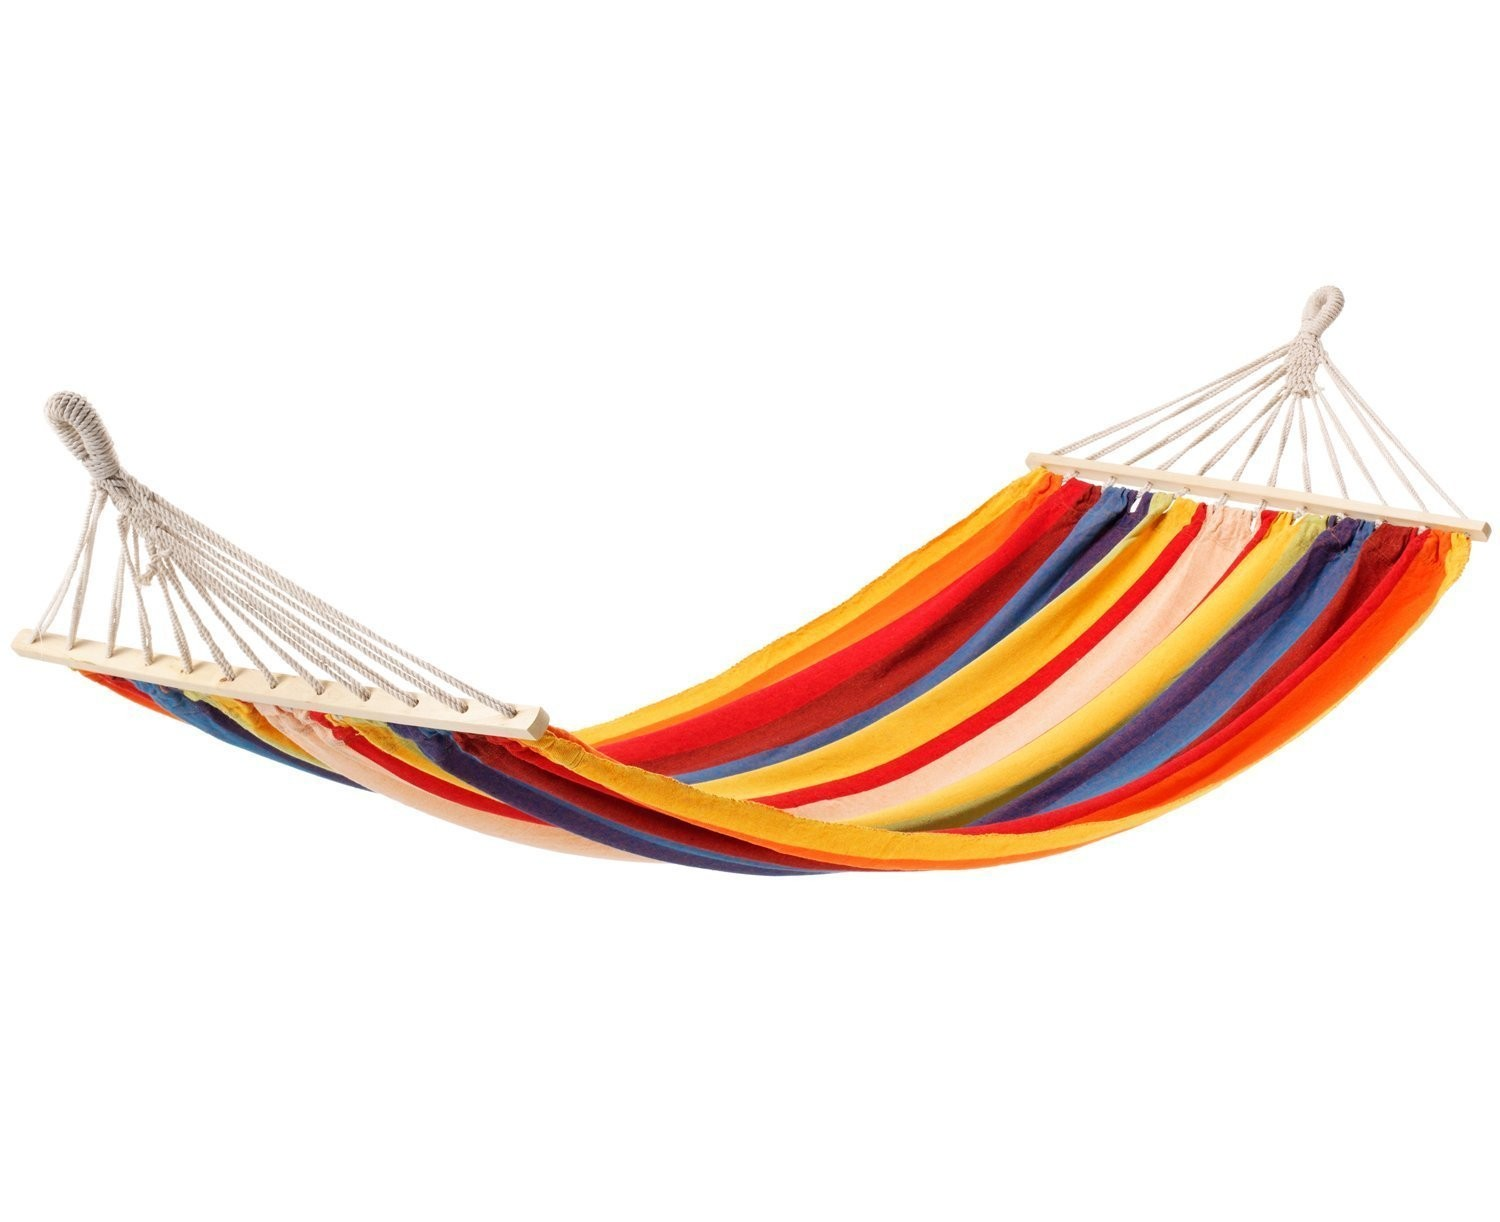 be guaranteed gently setup is backyard to will bank the under more spot your swinging pull off hammock easy without a this breaking there beautify soothing that favorite anything string pin garden than ideas lights